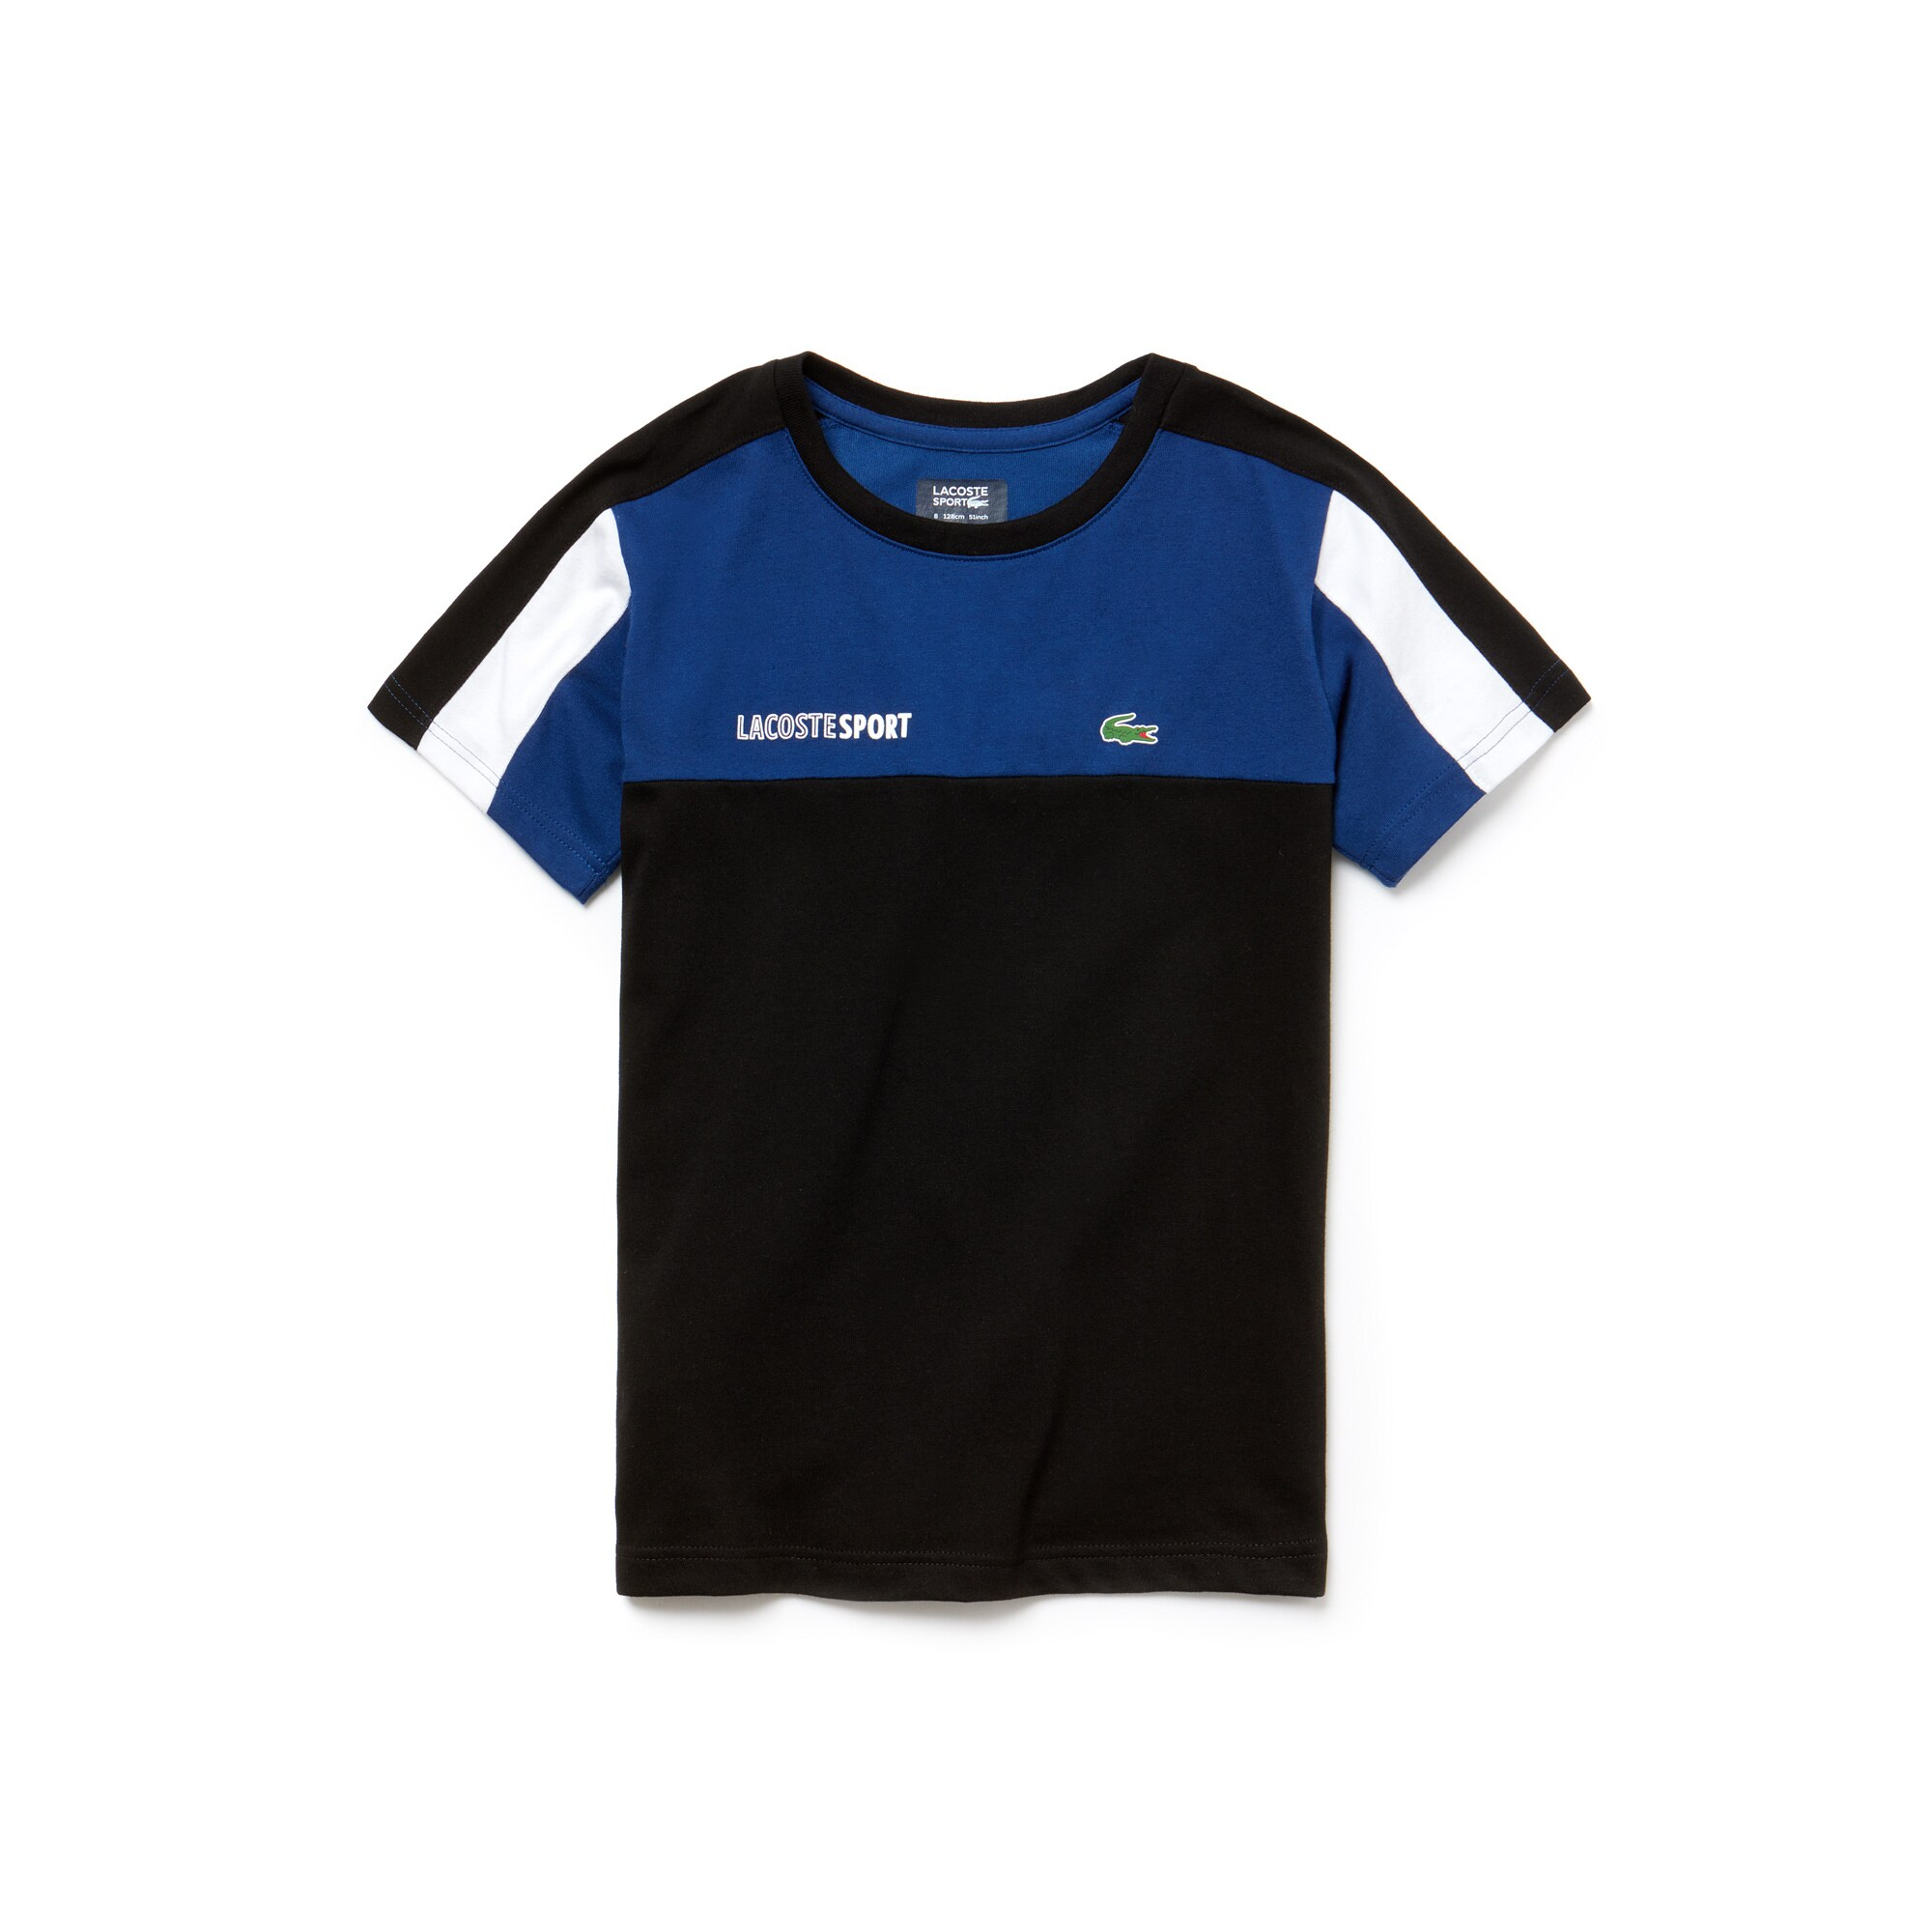 T-shirt col rond Garçon Tennis Lacoste SPORT en jersey technique color block